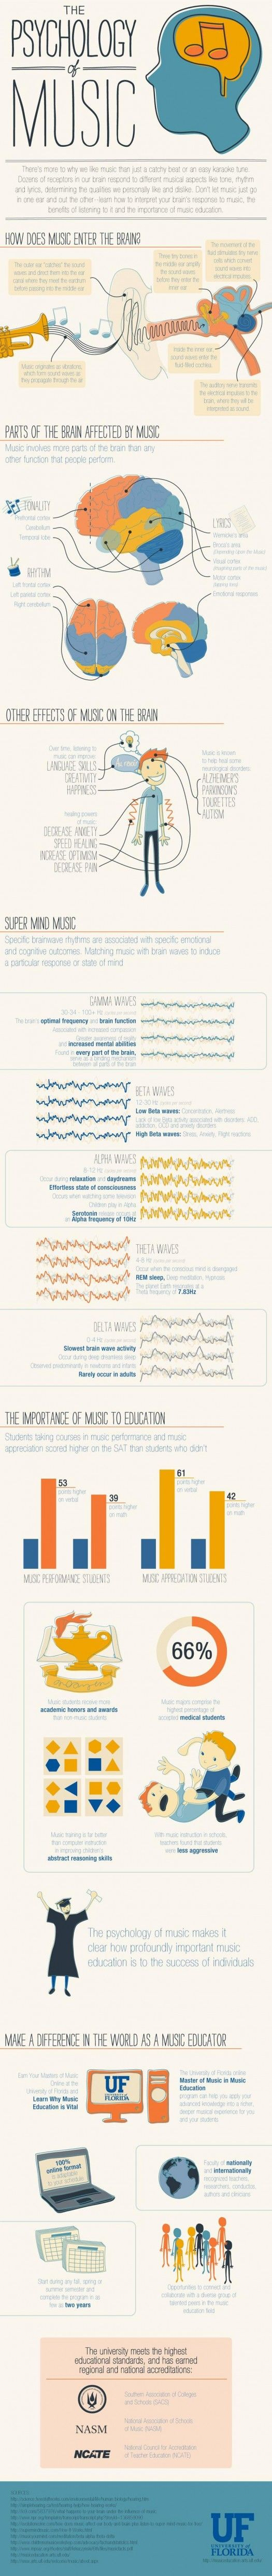 The Psychology of Music. Ignore the second half. Sorry, but music isnt a miracle worker. Listening to it wont instantly raise your